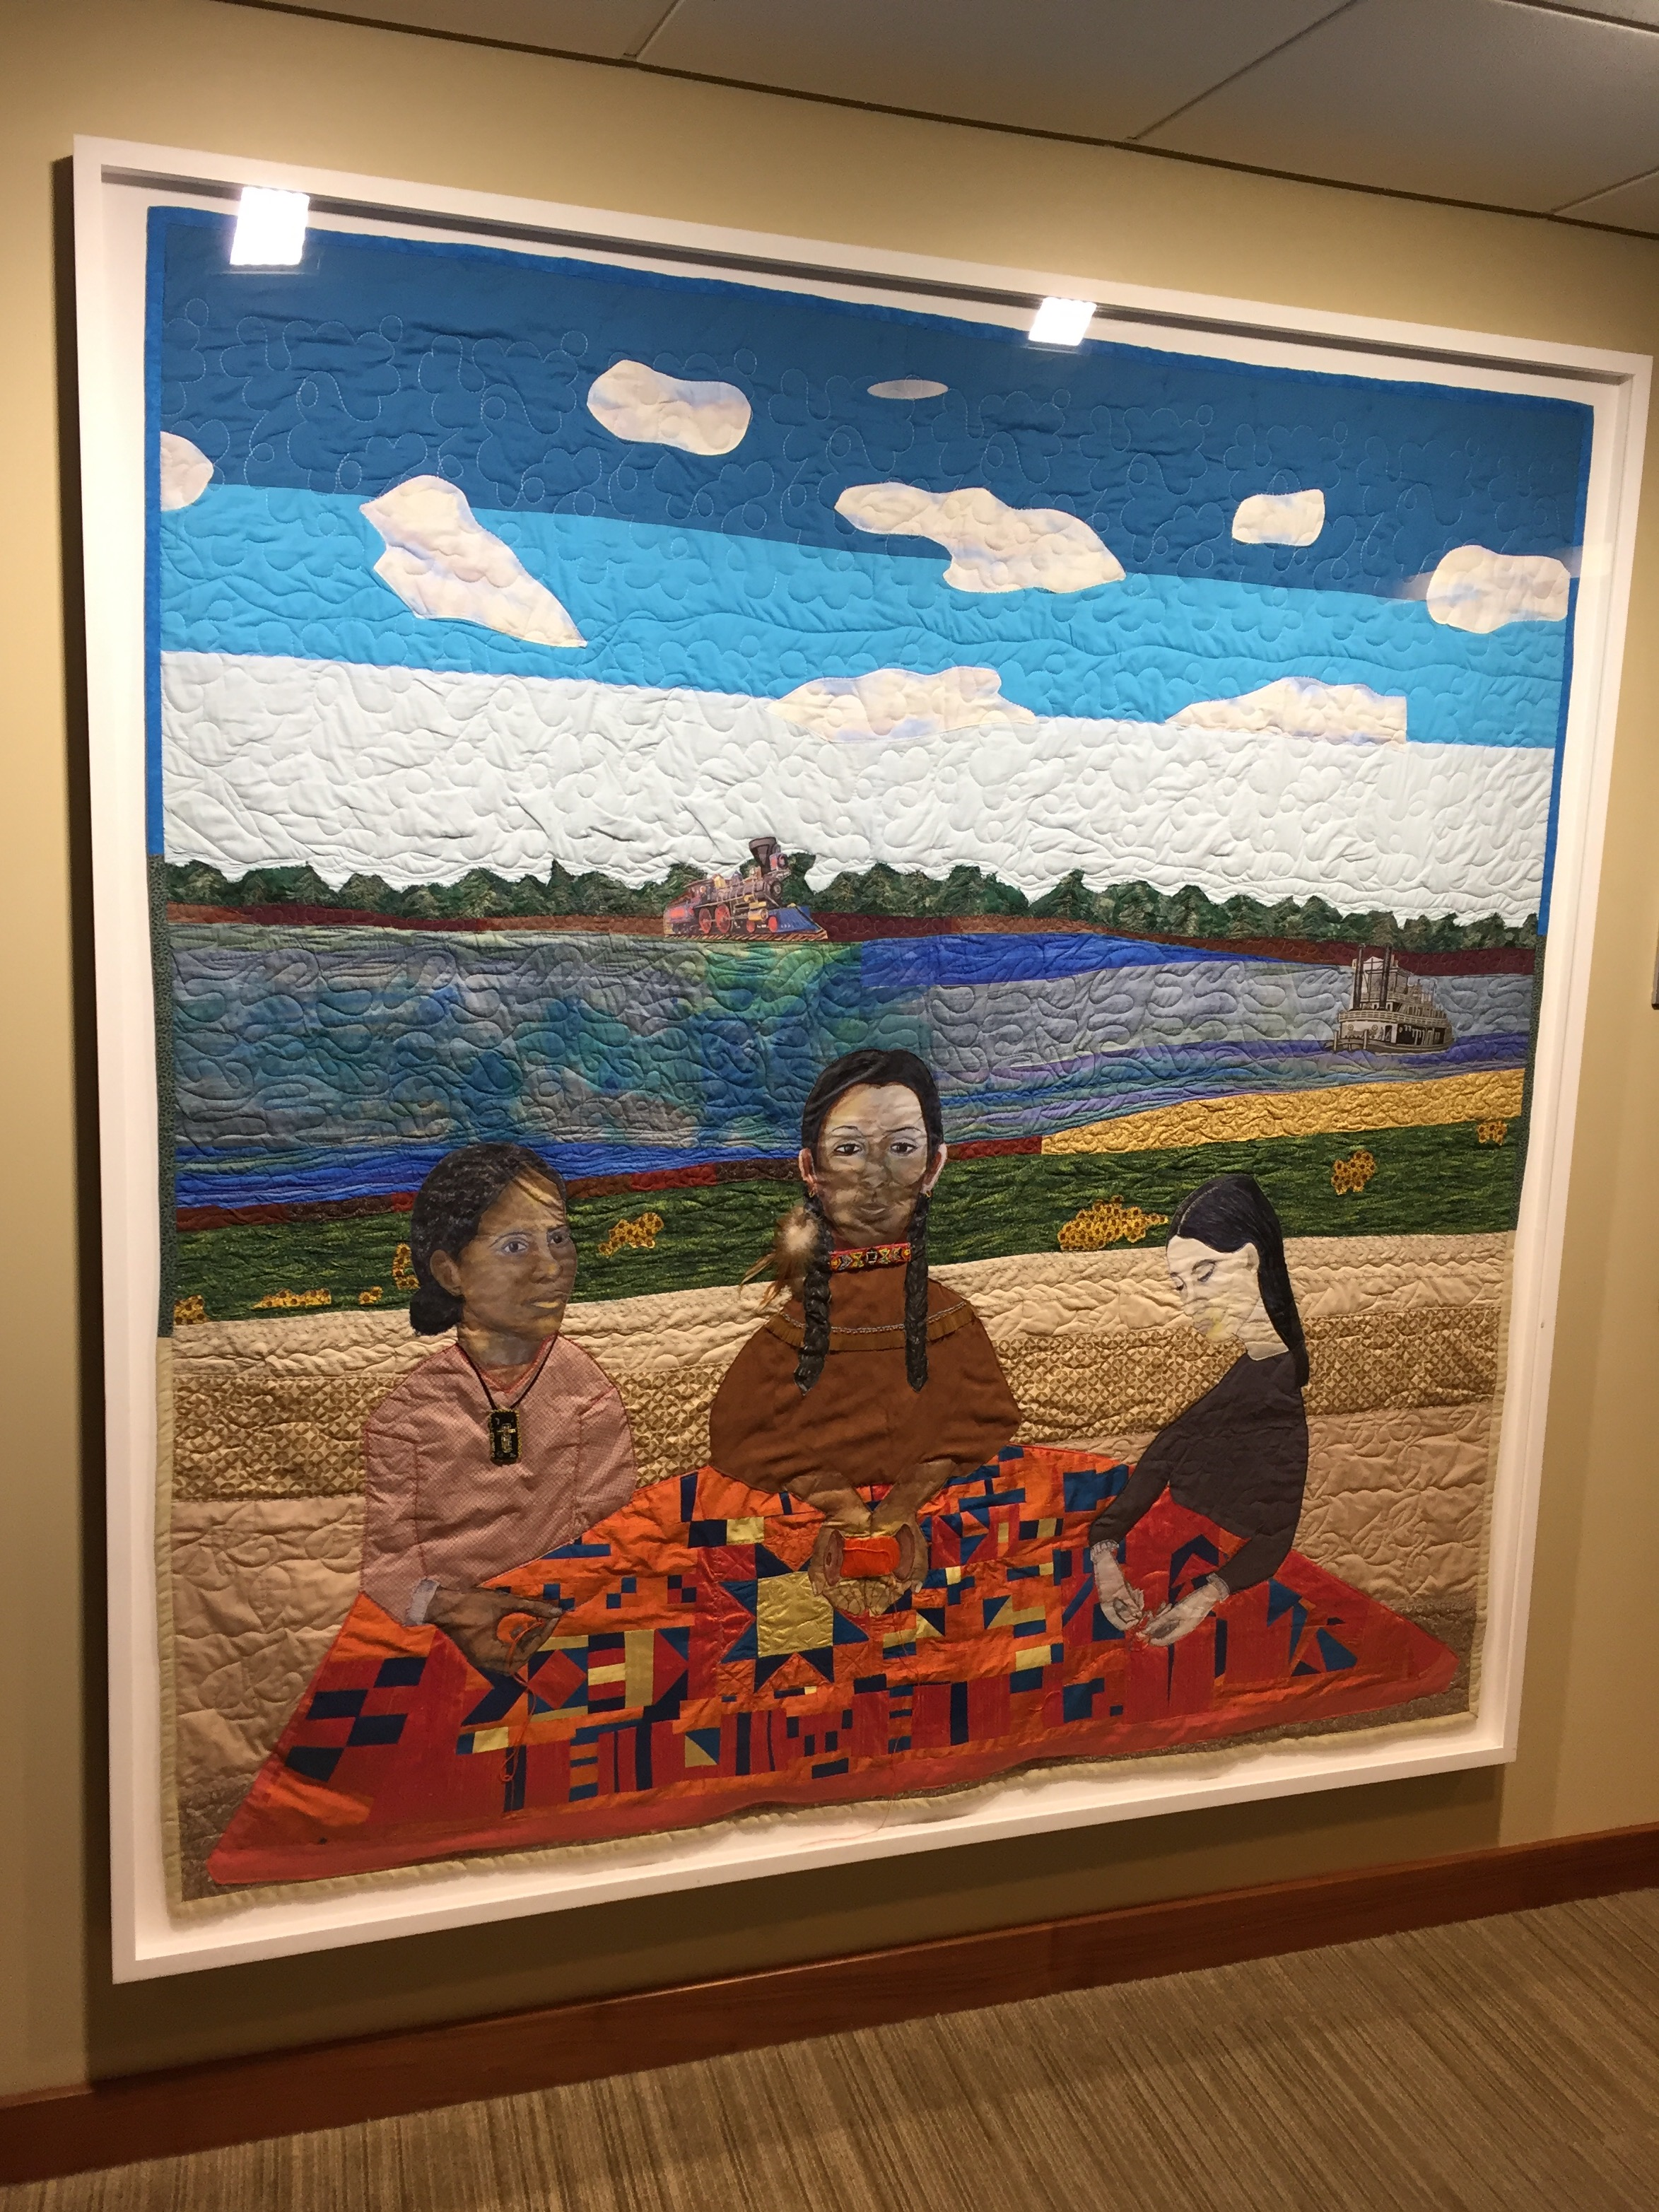 NedRa Bonds  Connecting Threads, 2014  A beautiful quilt showing 3 women of different ethnicities all working together on a quilt.